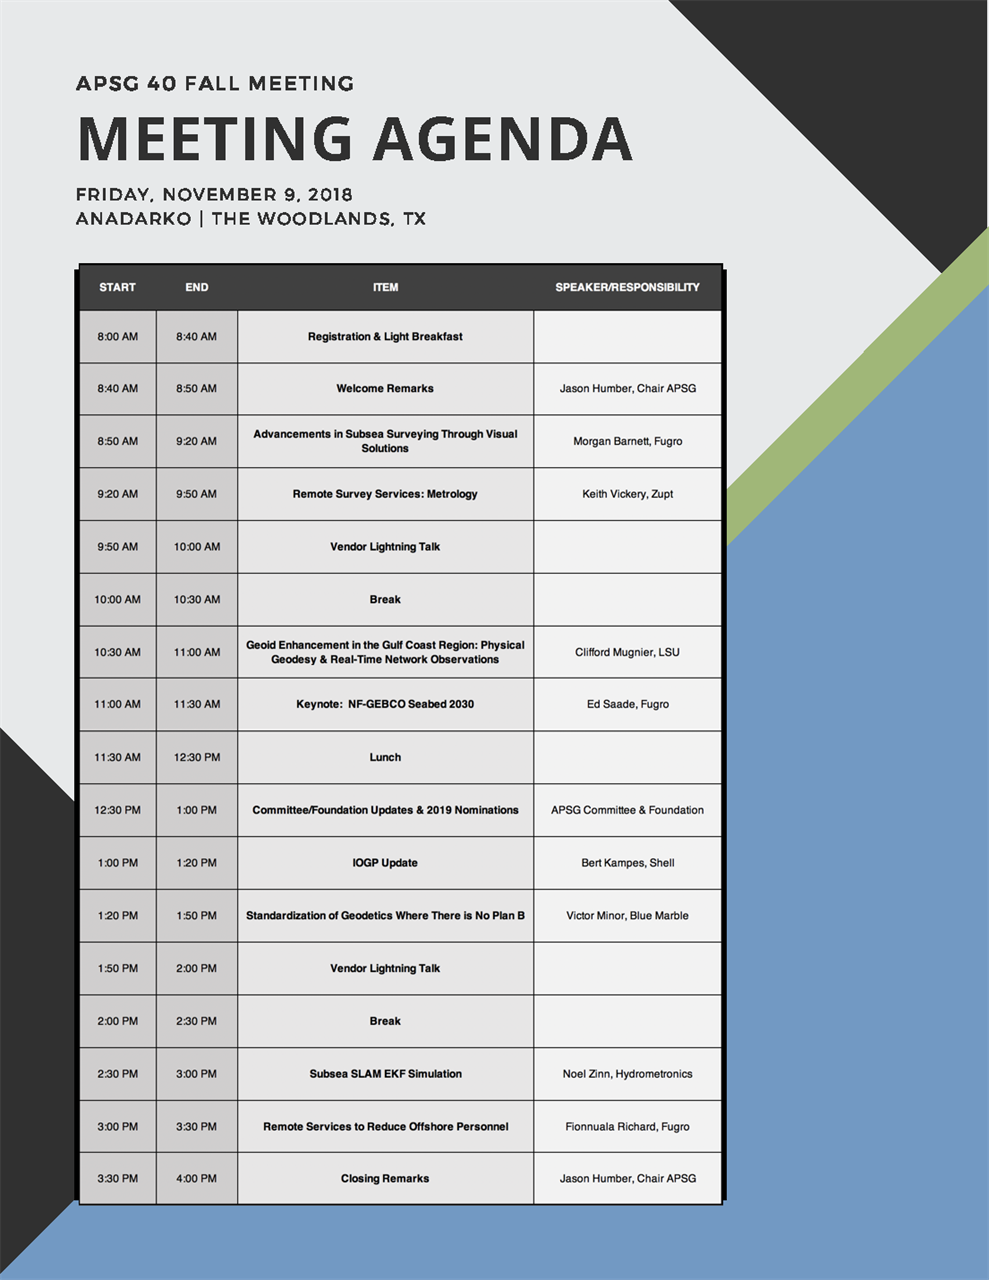 https://www.apsg.info/resources/Pictures/APSG40-MEETING-AGENDA-ANADARKO.png